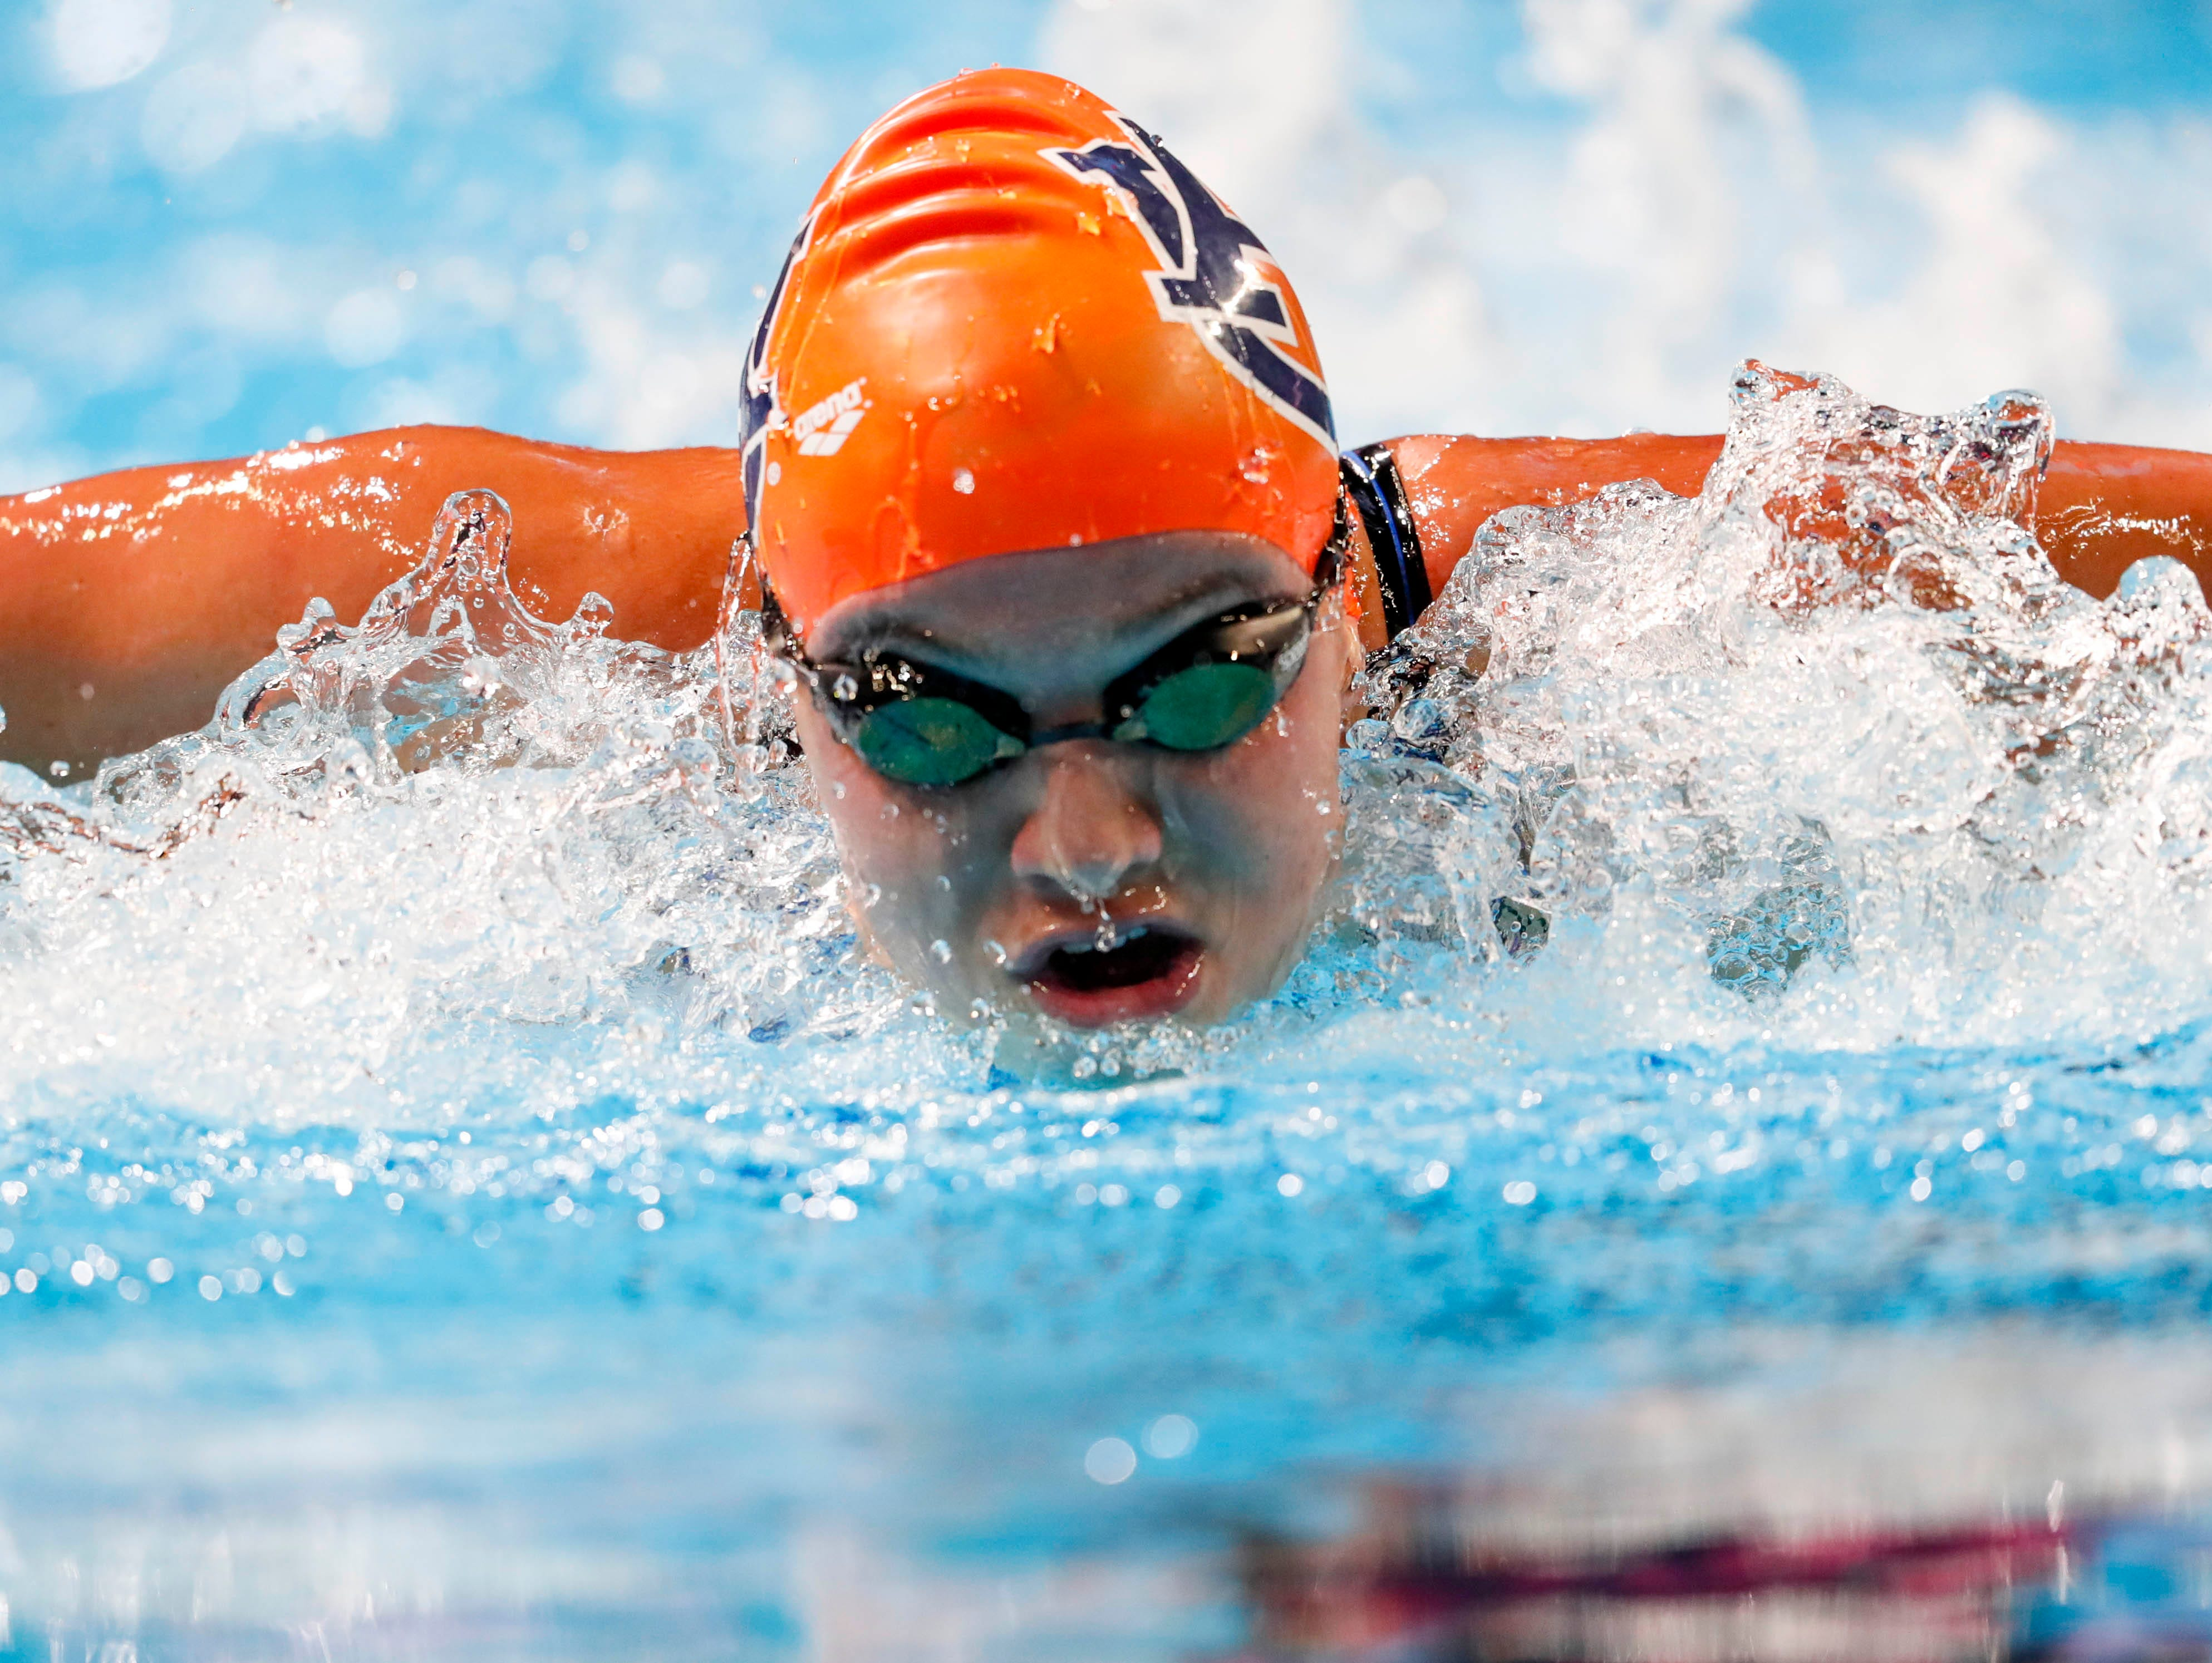 Fossil Ridge graduate and Auburn University sophomore Bailey Nero swims during the women's 200 meter butterfly in the U.S. Olympic swimming team trials at CenturyLink Center on Wednesday.